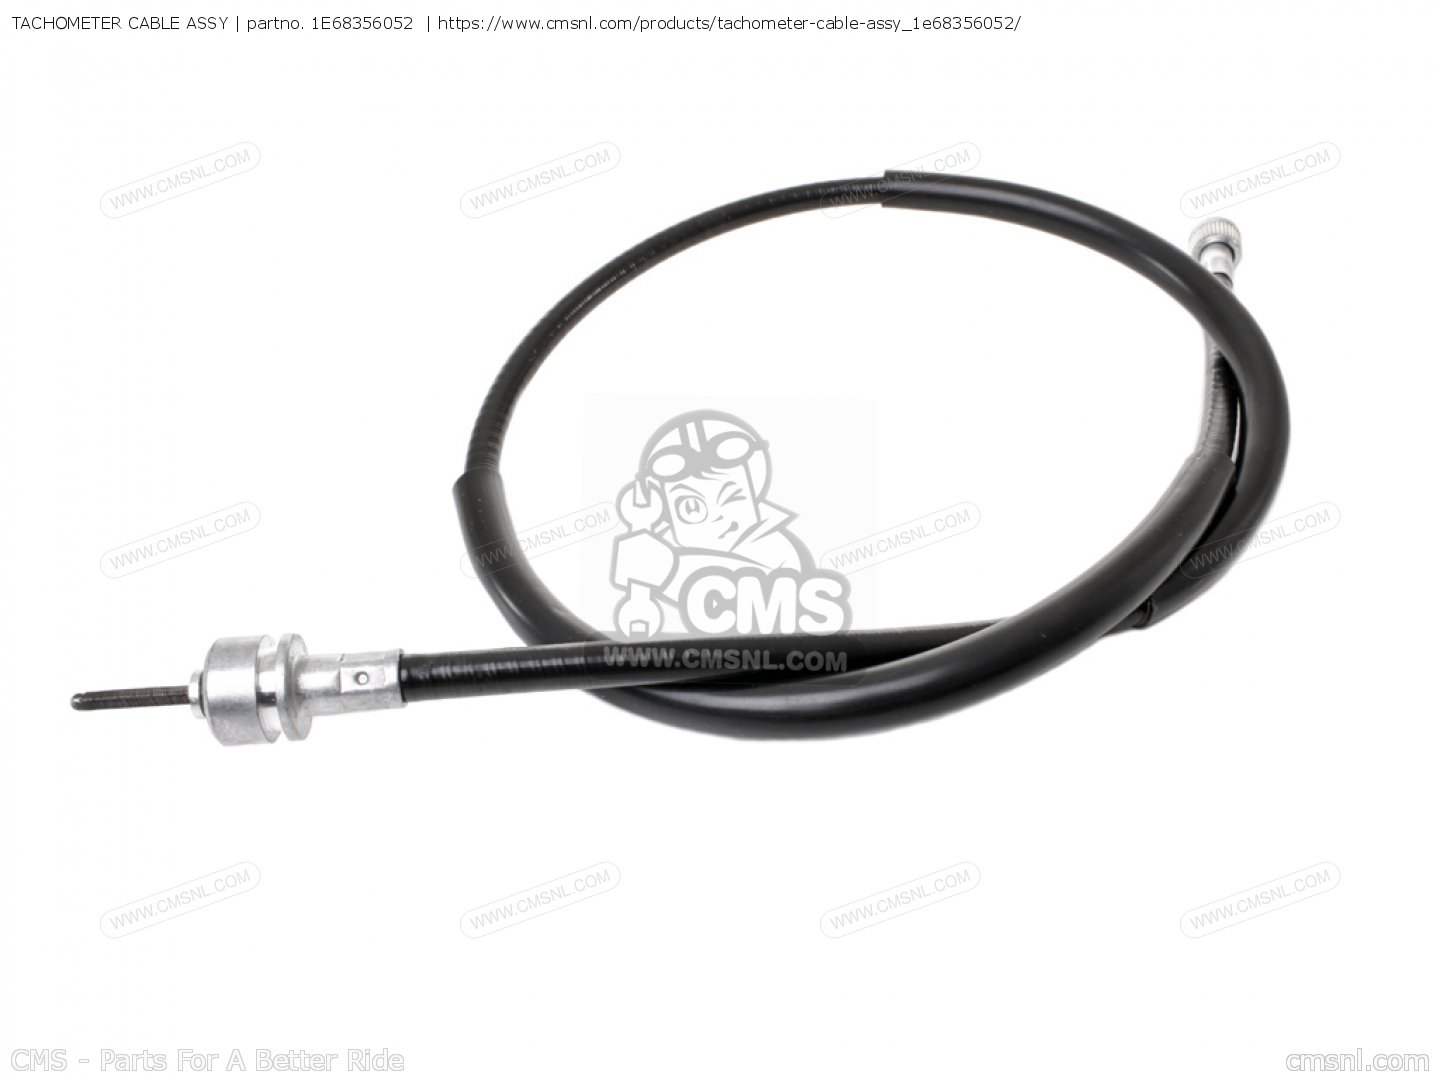 Tachometer Cable Assy For Xt500 Dual Purpose Usa